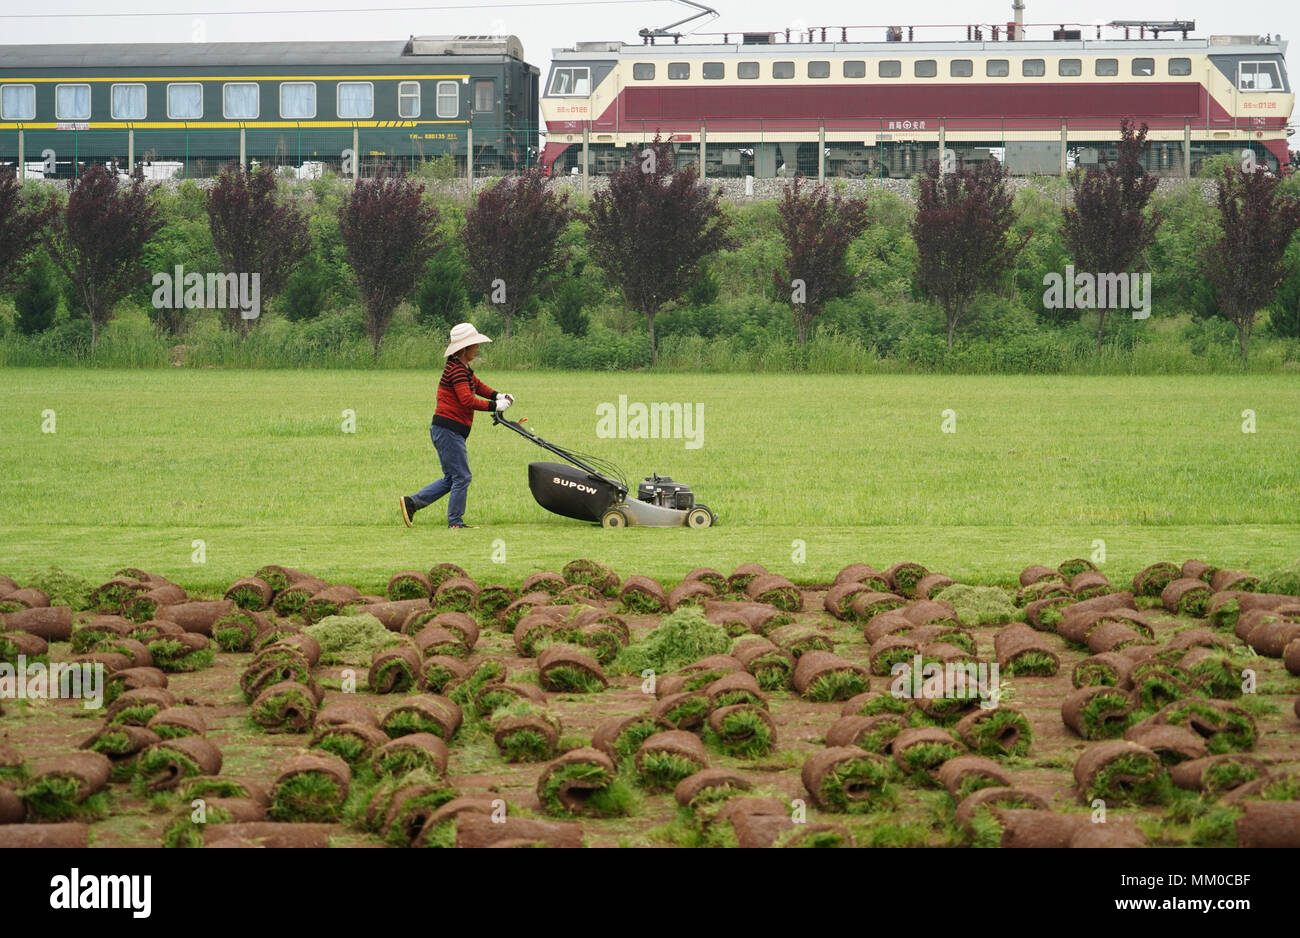 Xi'an, China's Shaanxi Province. 9th May, 2018. A villager trims a lawn from which commercial turfs are planted in Fujiang Village of Yinzhen Neighbourhood in Xi'an, northwest China's Shaanxi Province, May 9, 2018. The need for turfs during China's urbanization process has driven farmers in Yinzhen Neighbourhood to invest in the turf business. Credit: Shao Rui/Xinhua/Alamy Live News - Stock Image